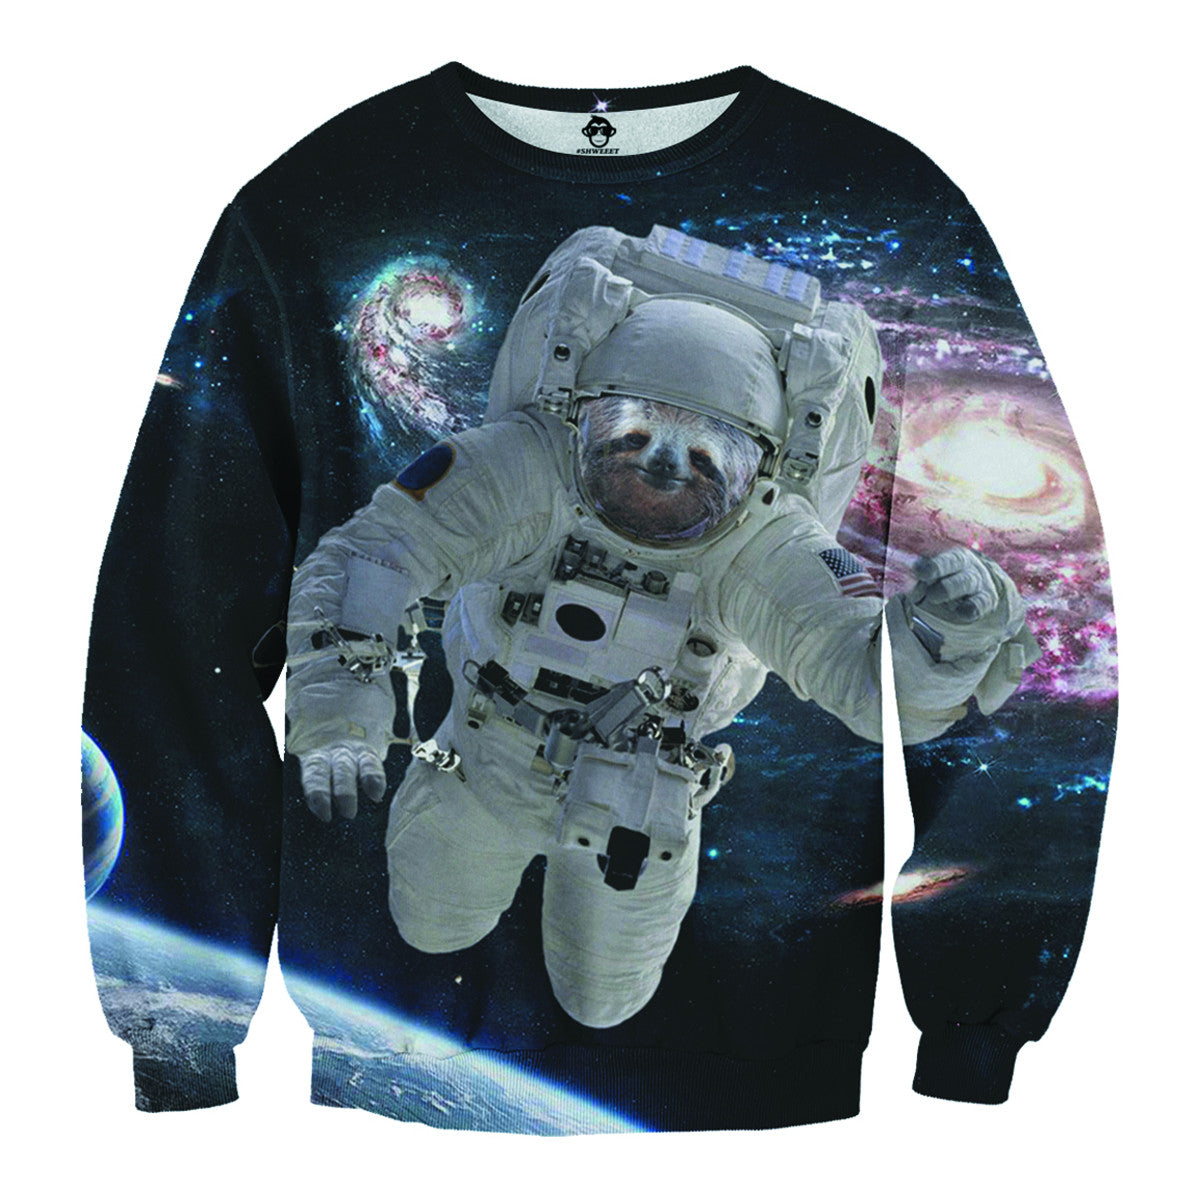 Astronaut Sloth Sweater - Shweeet